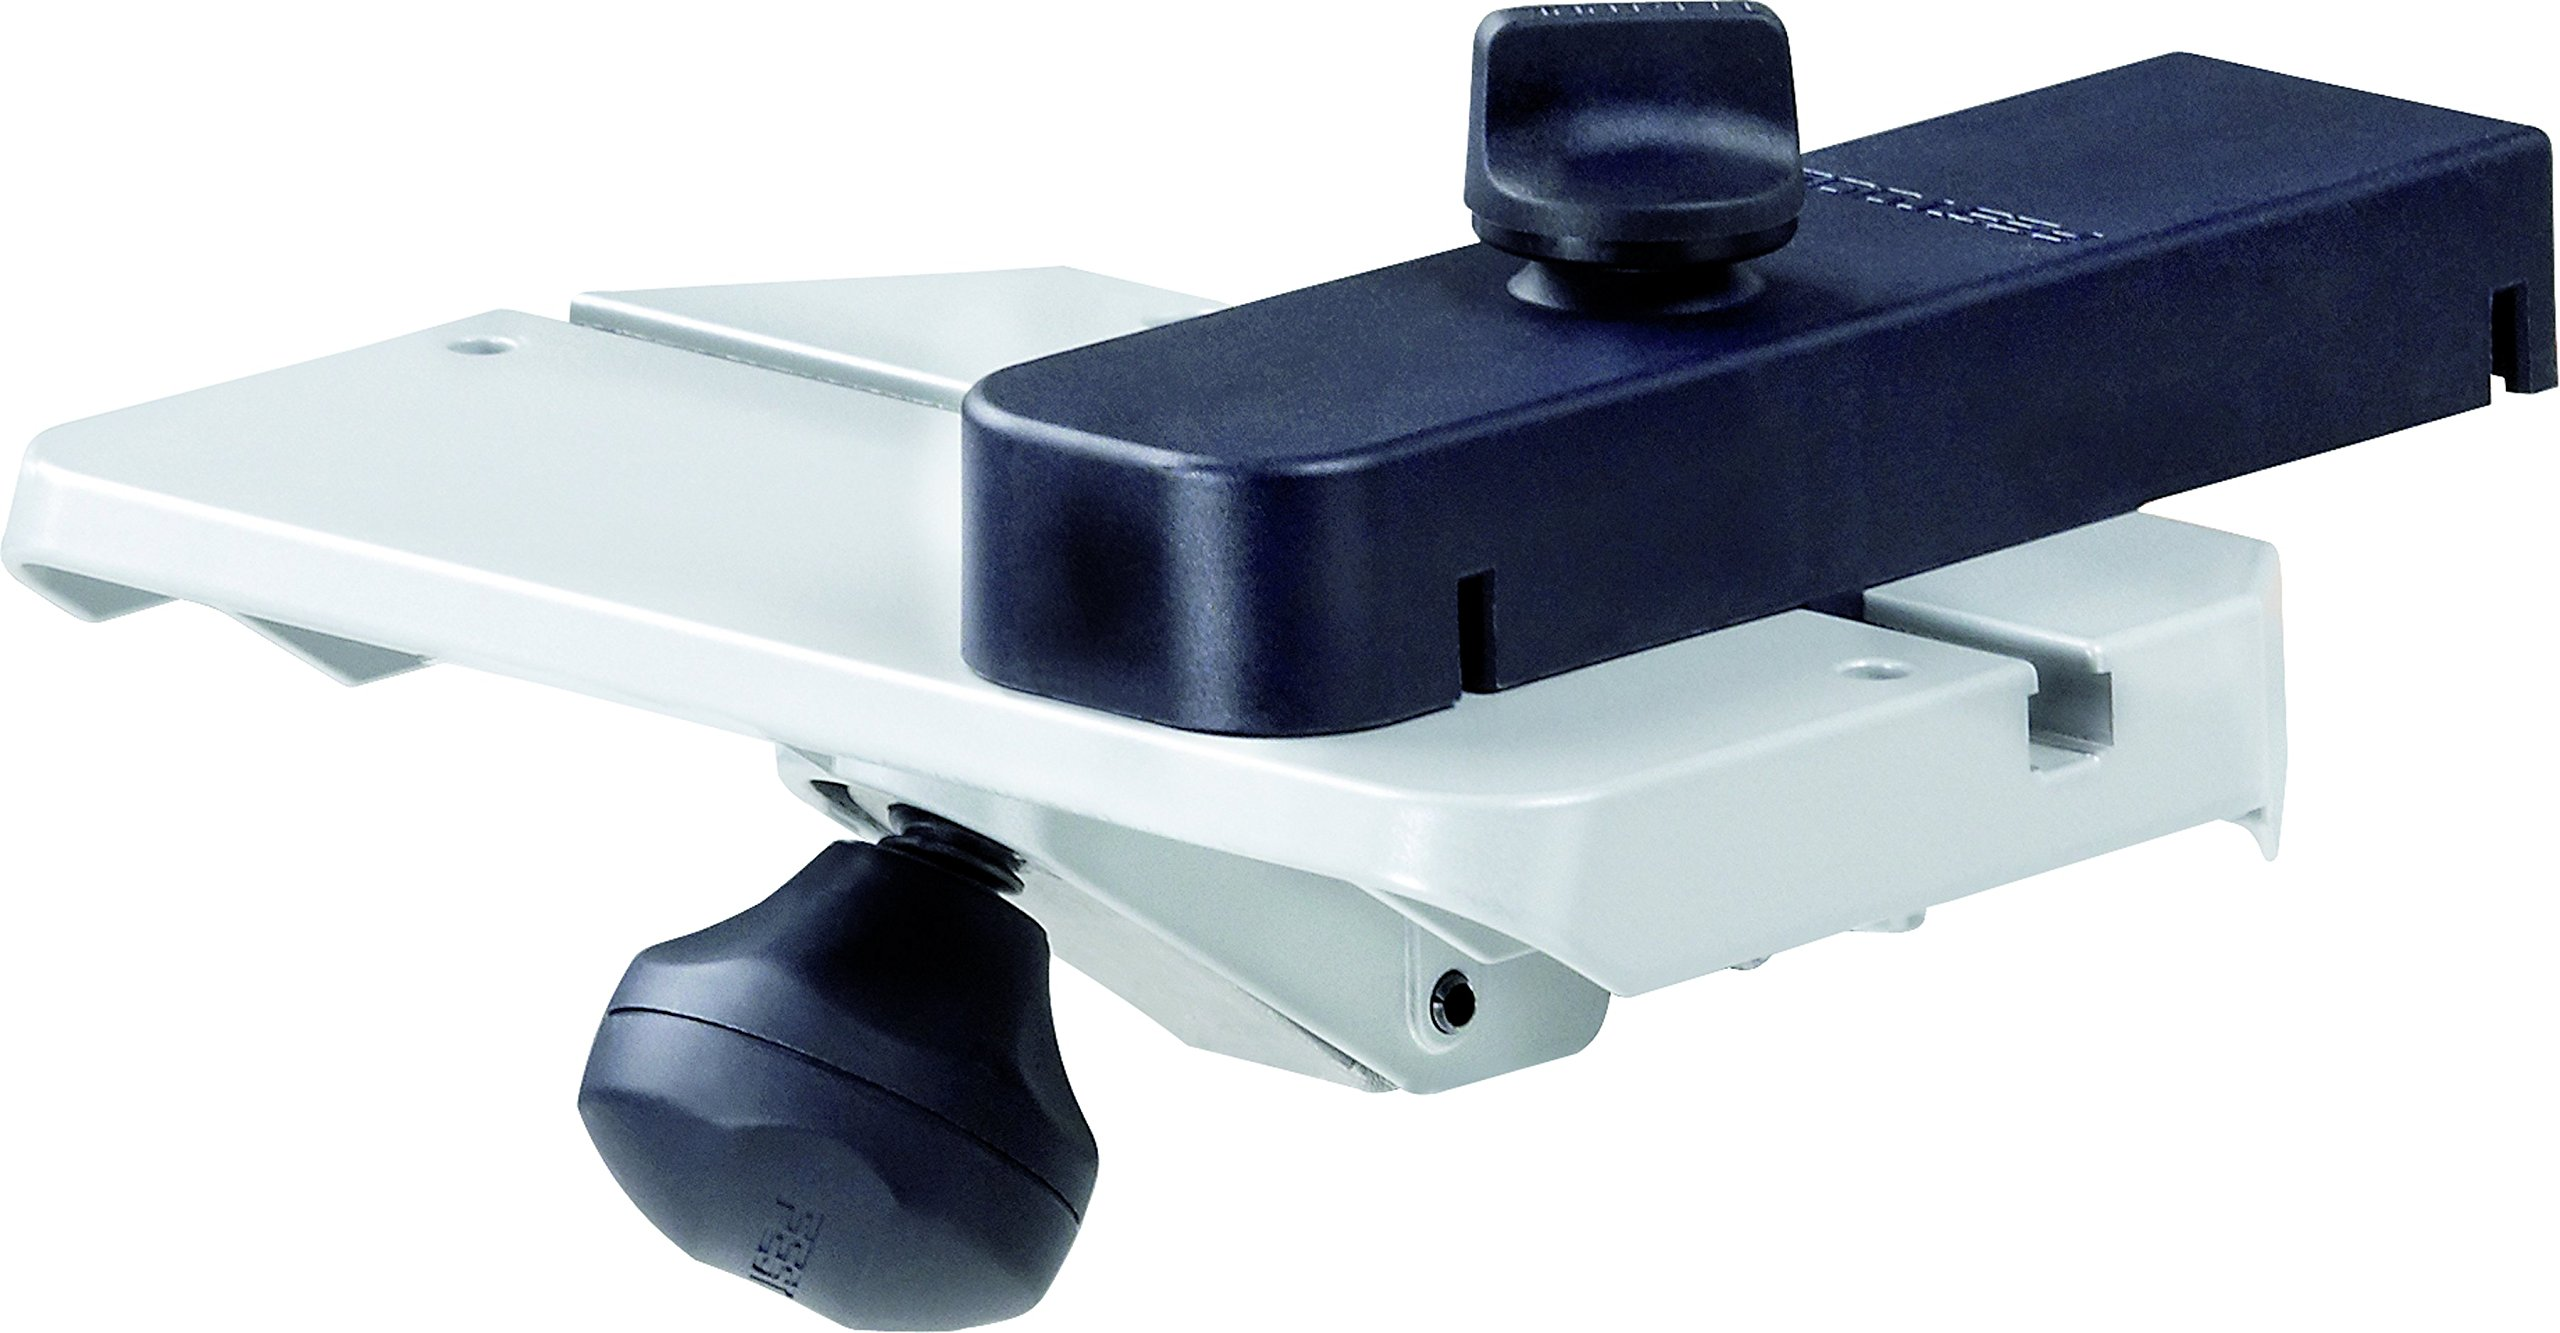 Festool 494369 Kapex Miter Saw Crown Stop With Base Extension by Festool